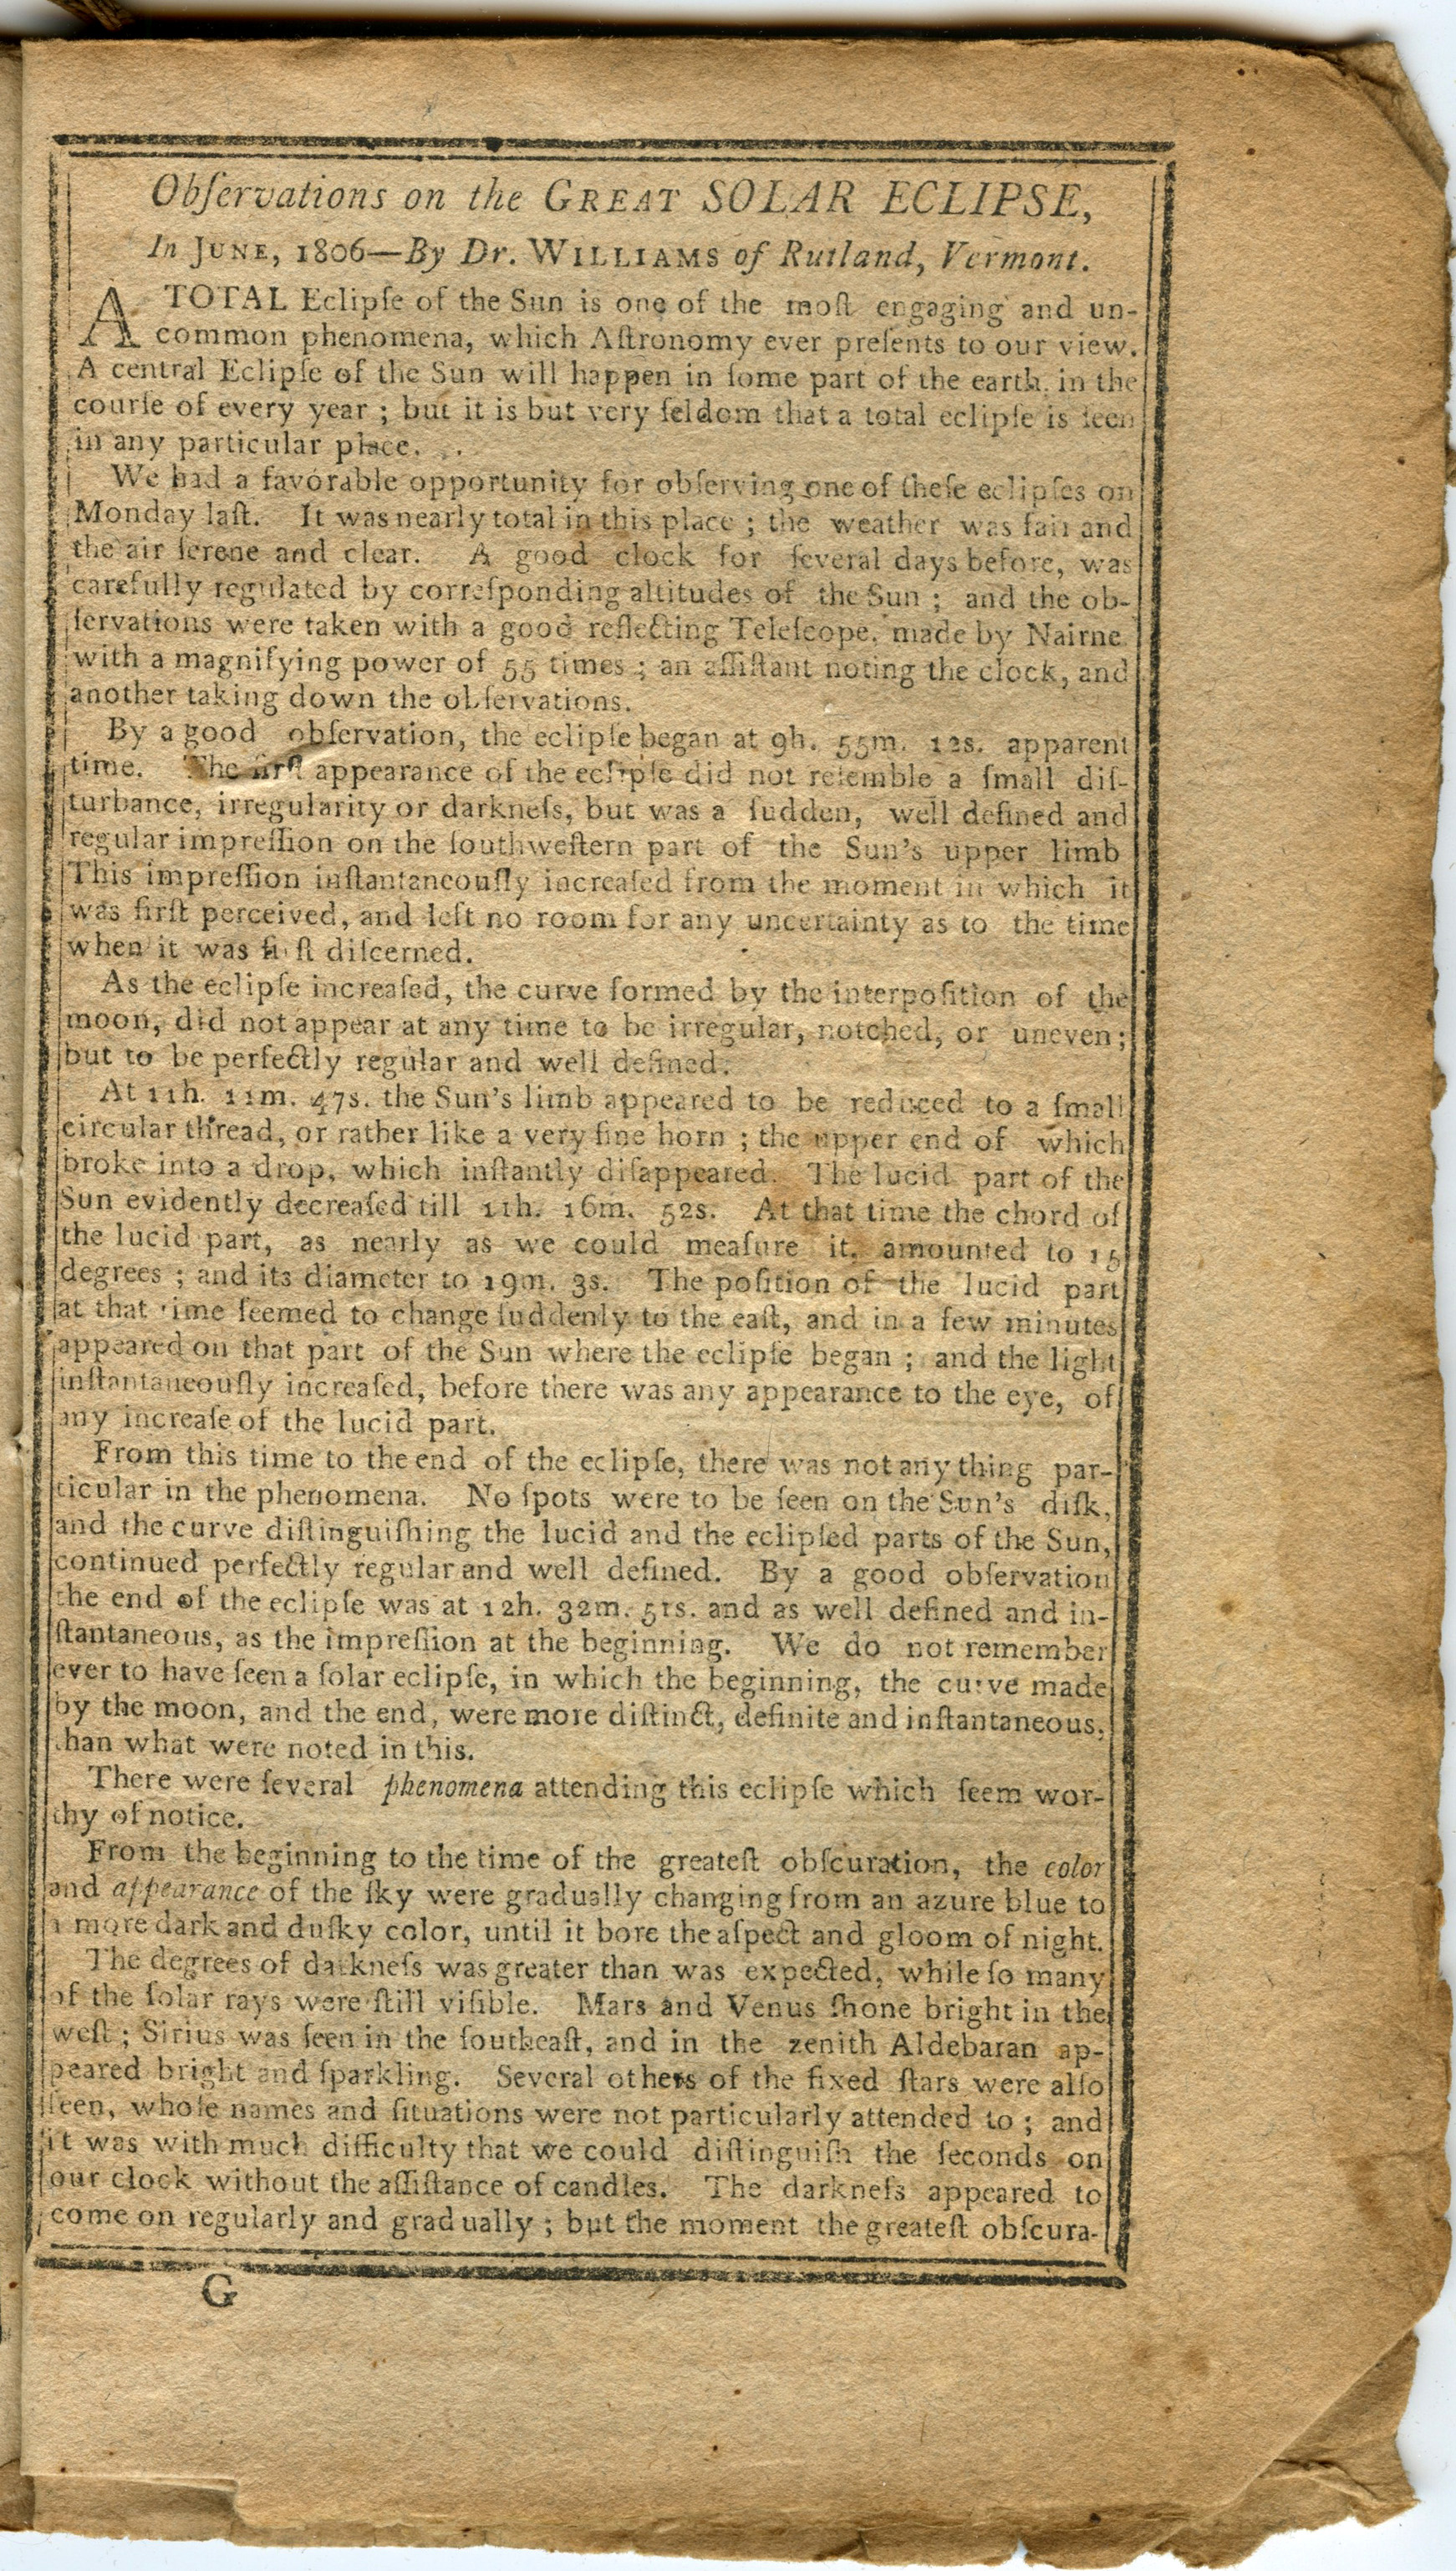 Report of the eclipse in the Hampshire Federalist, July 8, 1806. Collection of Michael Zeiler